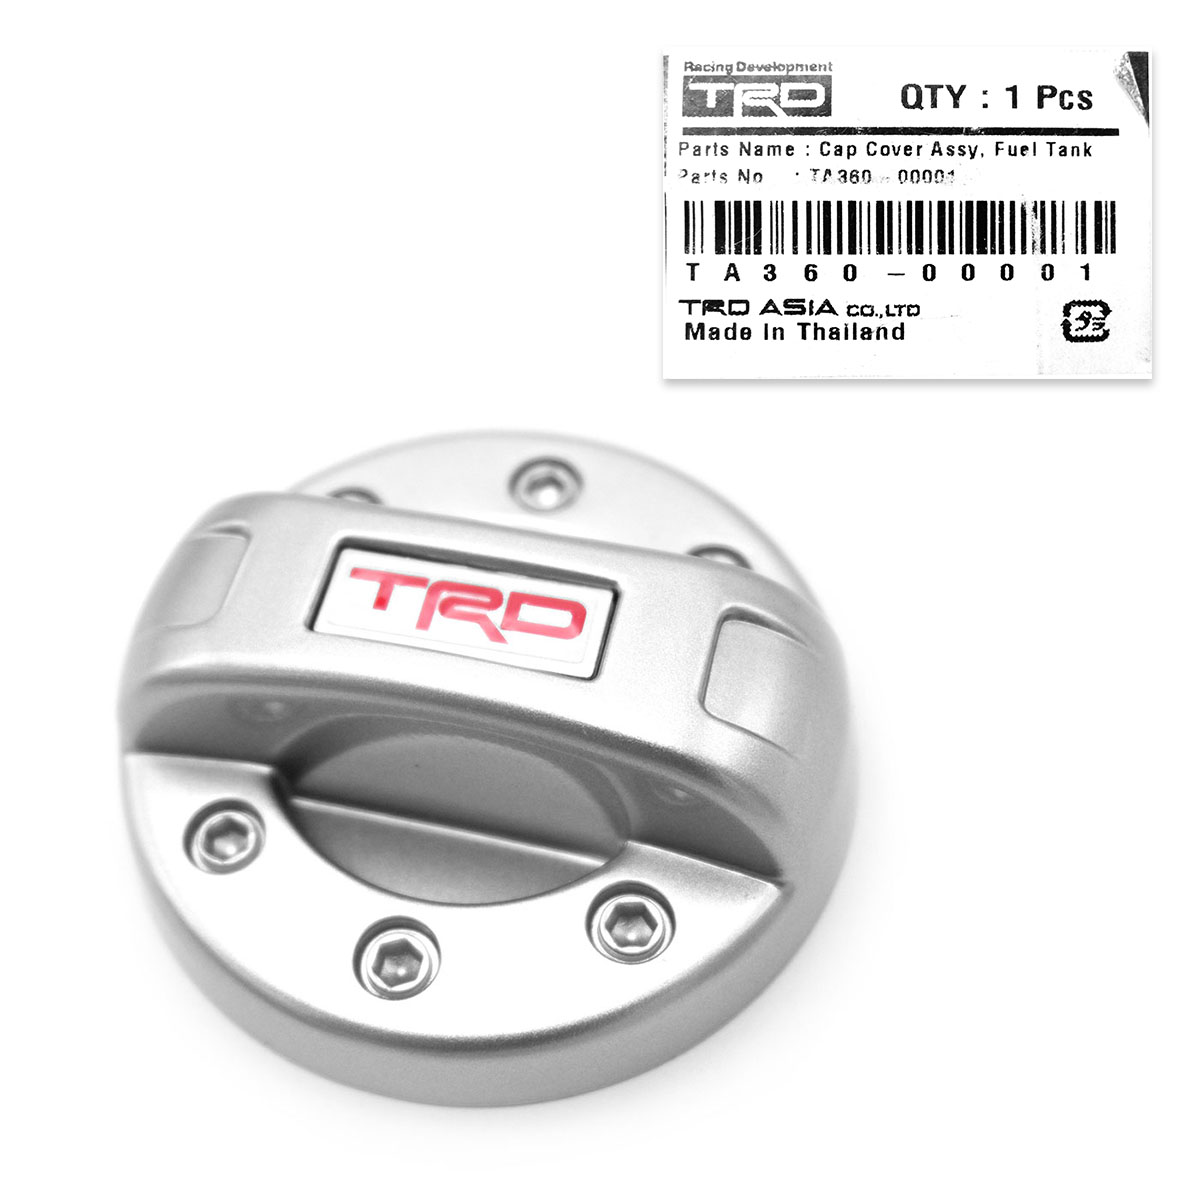 Details about Genuine TRD Fuel Tank Cap Cover Fits Toyota Revo Rocco Fortuner Innova 2015 2019